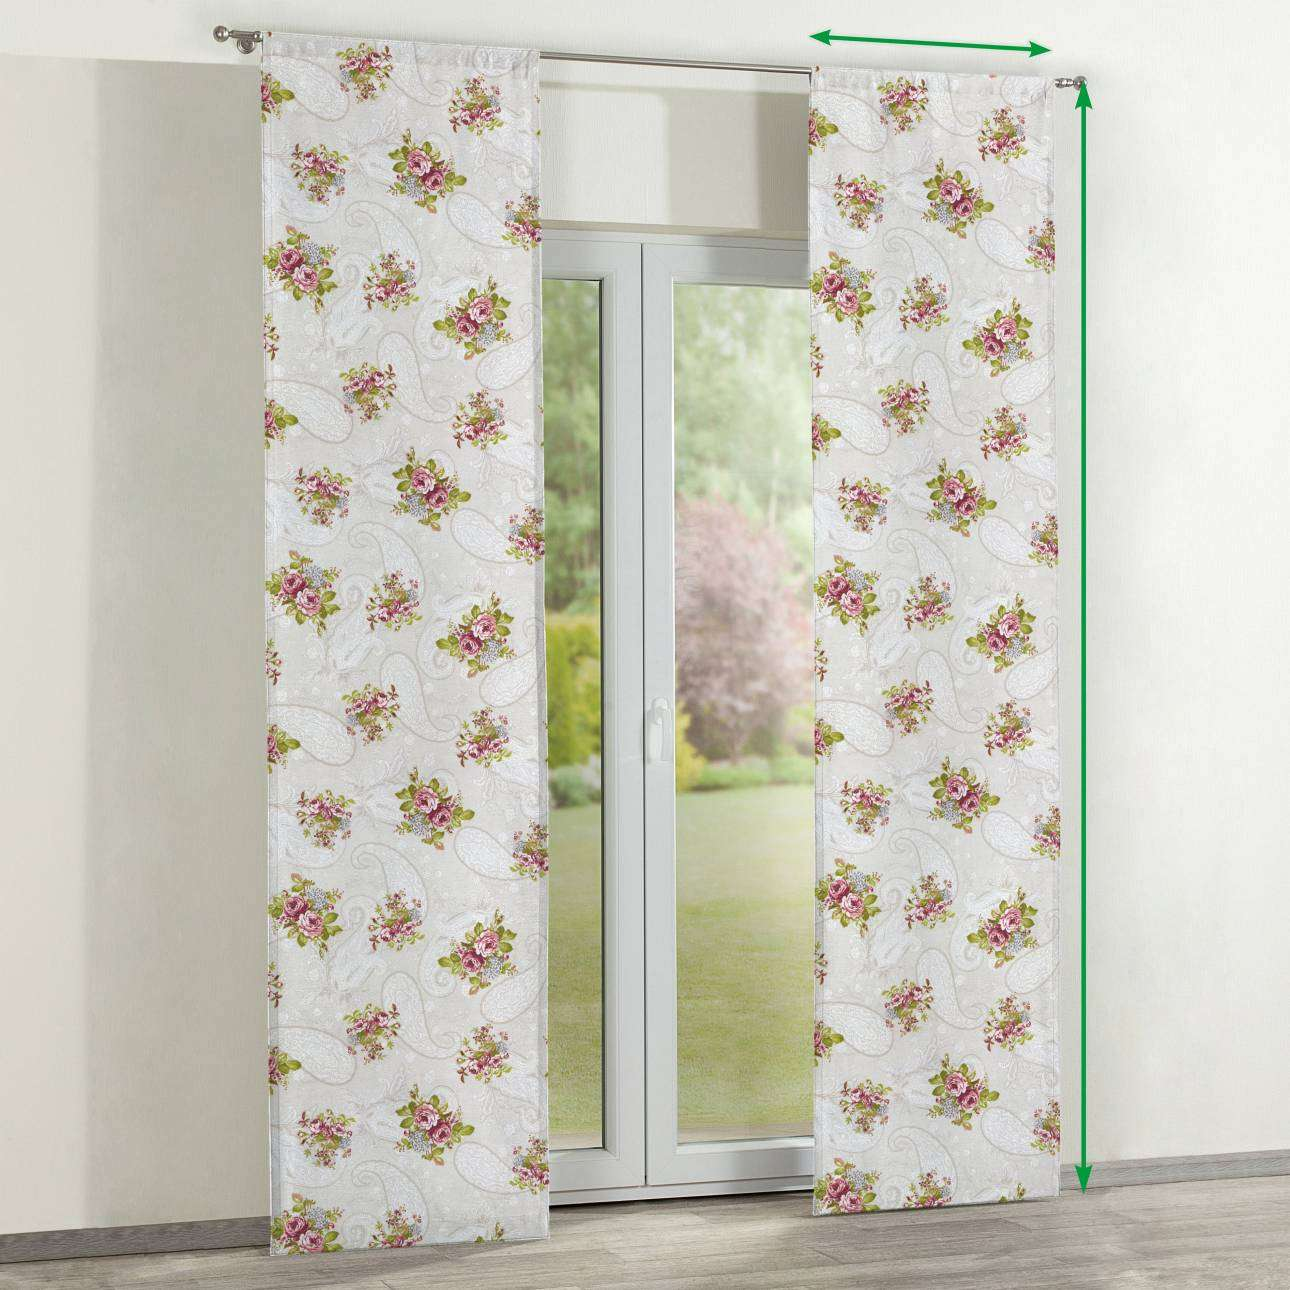 Slot panel curtains – Set of 2 in collection Flowers, fabric: 311-15